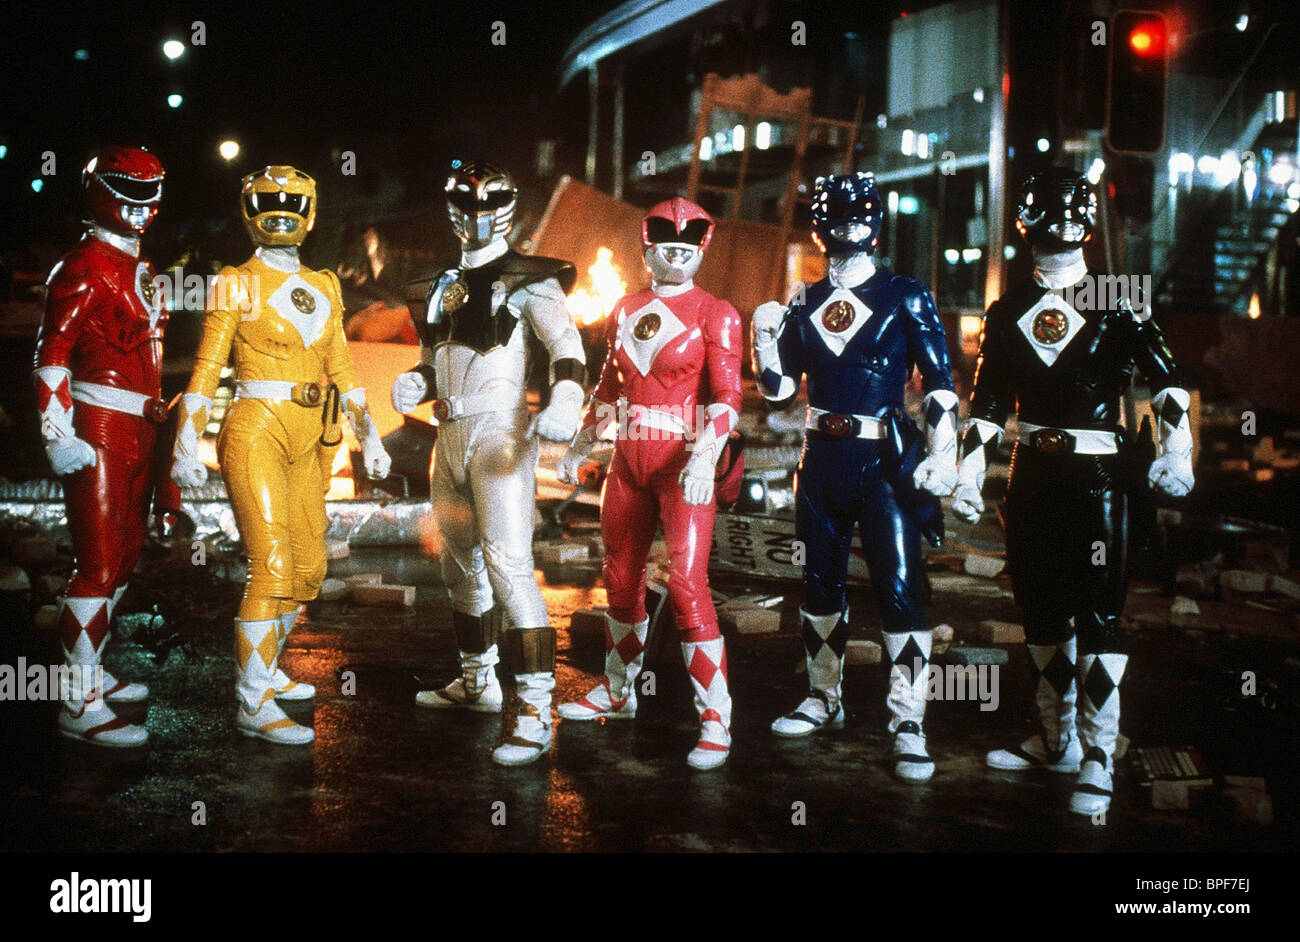 STEVE CARDENAS, KARAN ASHLEY, JASON DAVID FRANK, AMY JO JOHNSON, DAVID YOST, JOHNNY YONG BOSCH, MIGHTY MORPHIN POWER - Stock Image